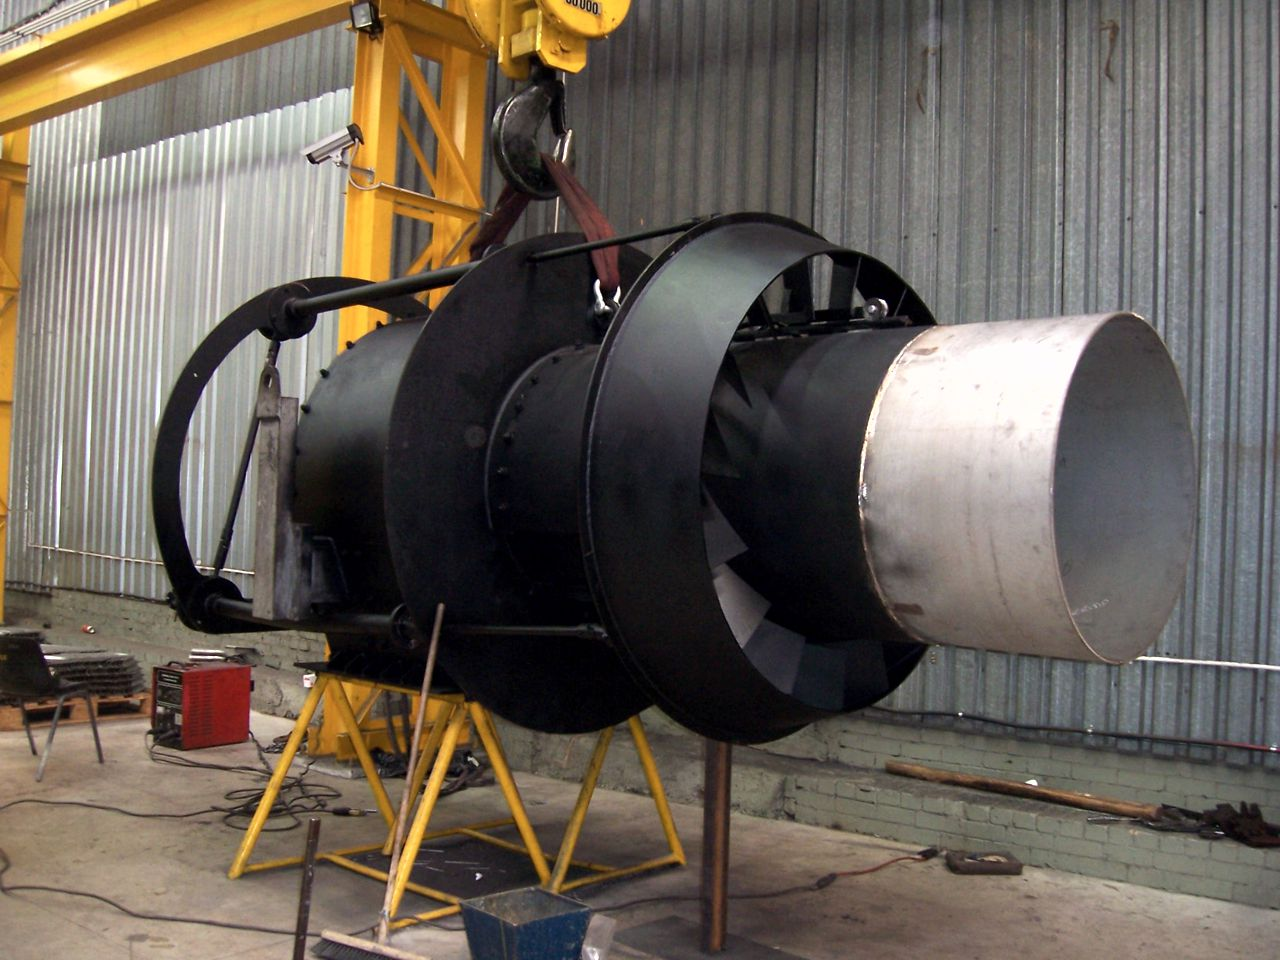 PF BURNER ASSEMBLY